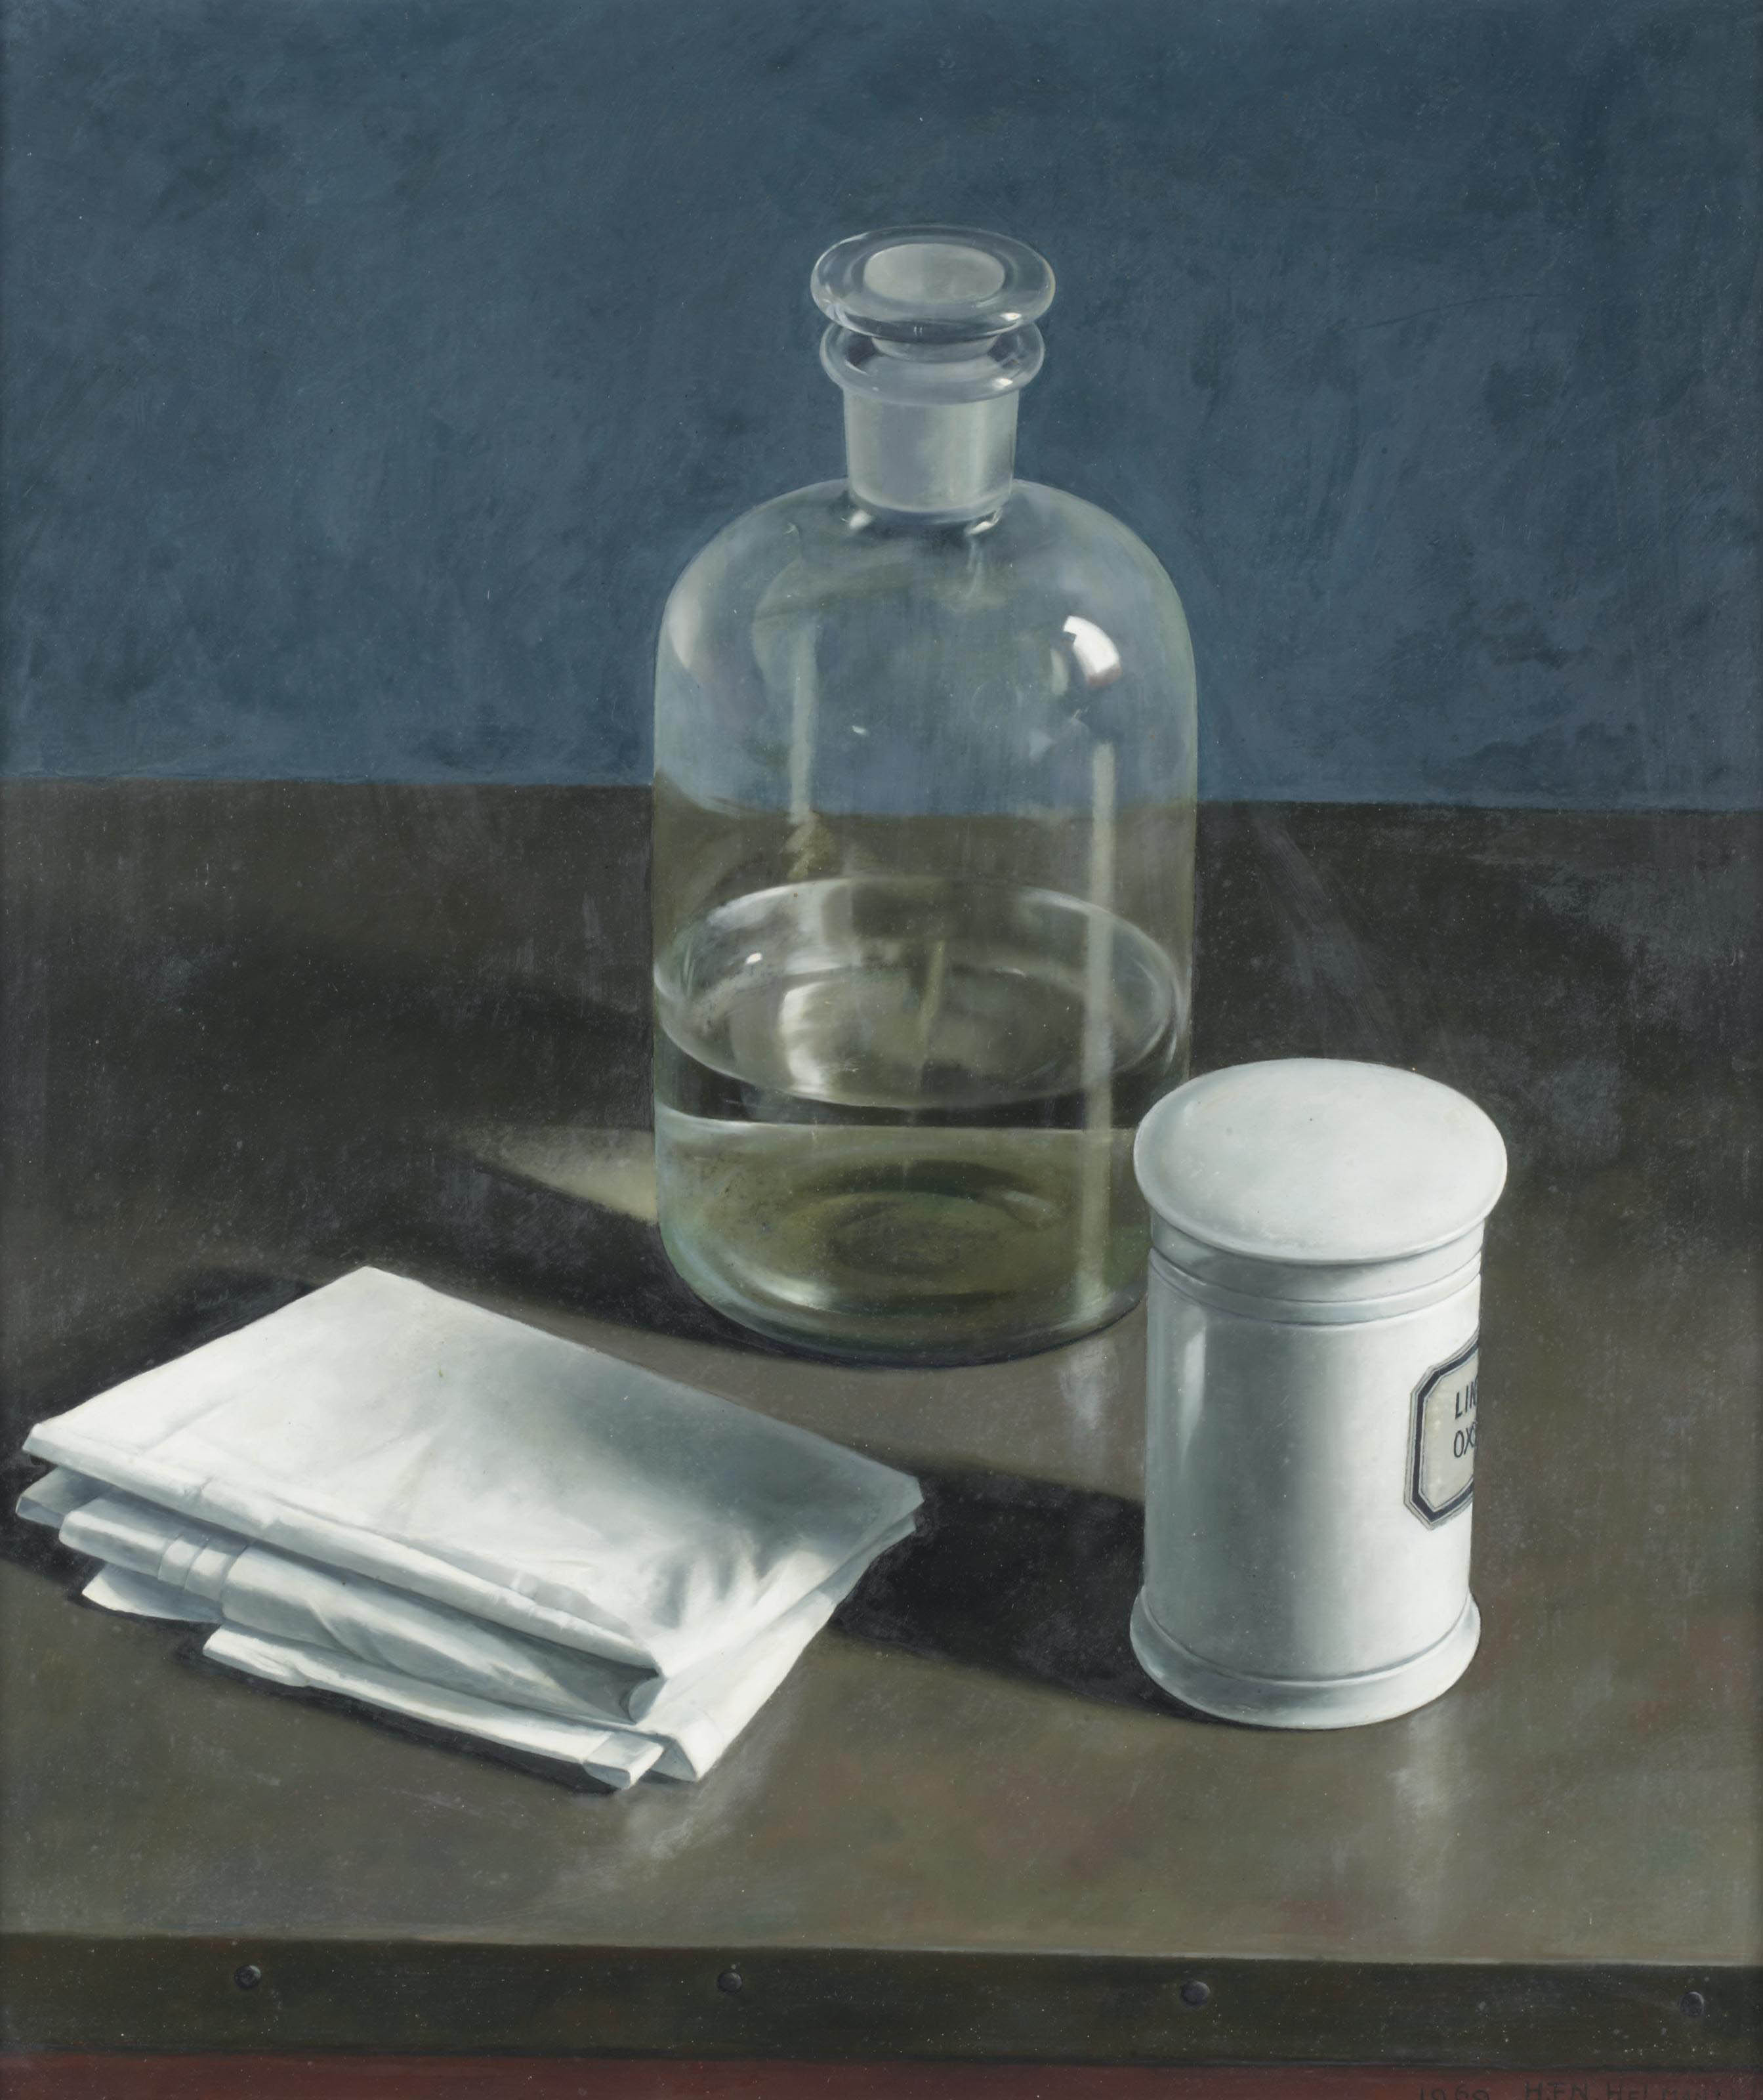 A still life with a bottle and a pharmacy jar